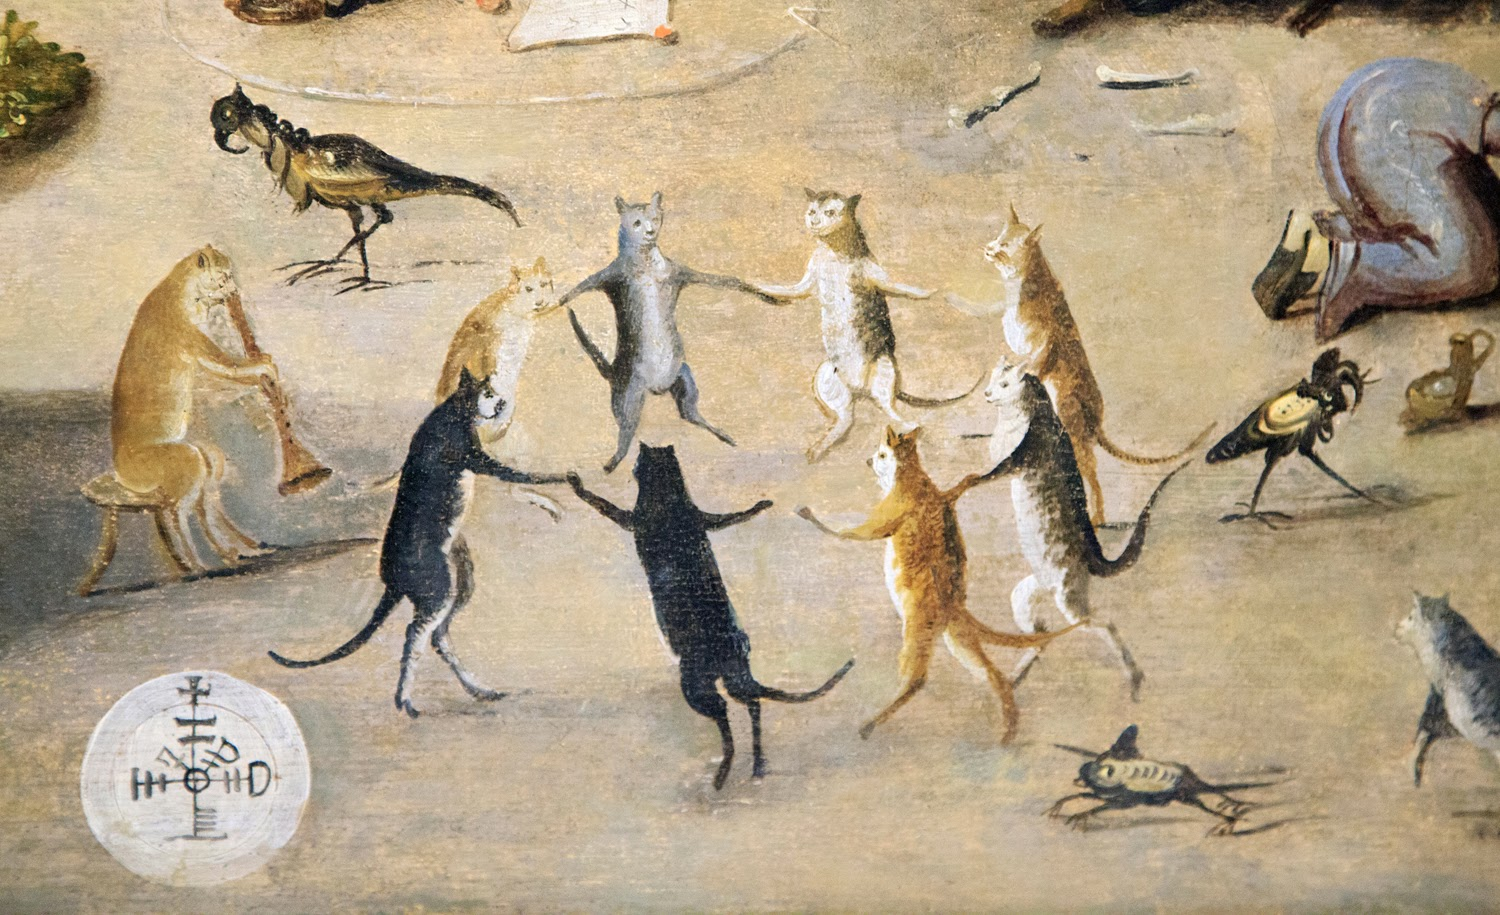 http://morbidanatomy.bigcartel.com/product/the-cat-dance-detail-of-the-witches-cove-jennifer-butkevich-collection-digital-print